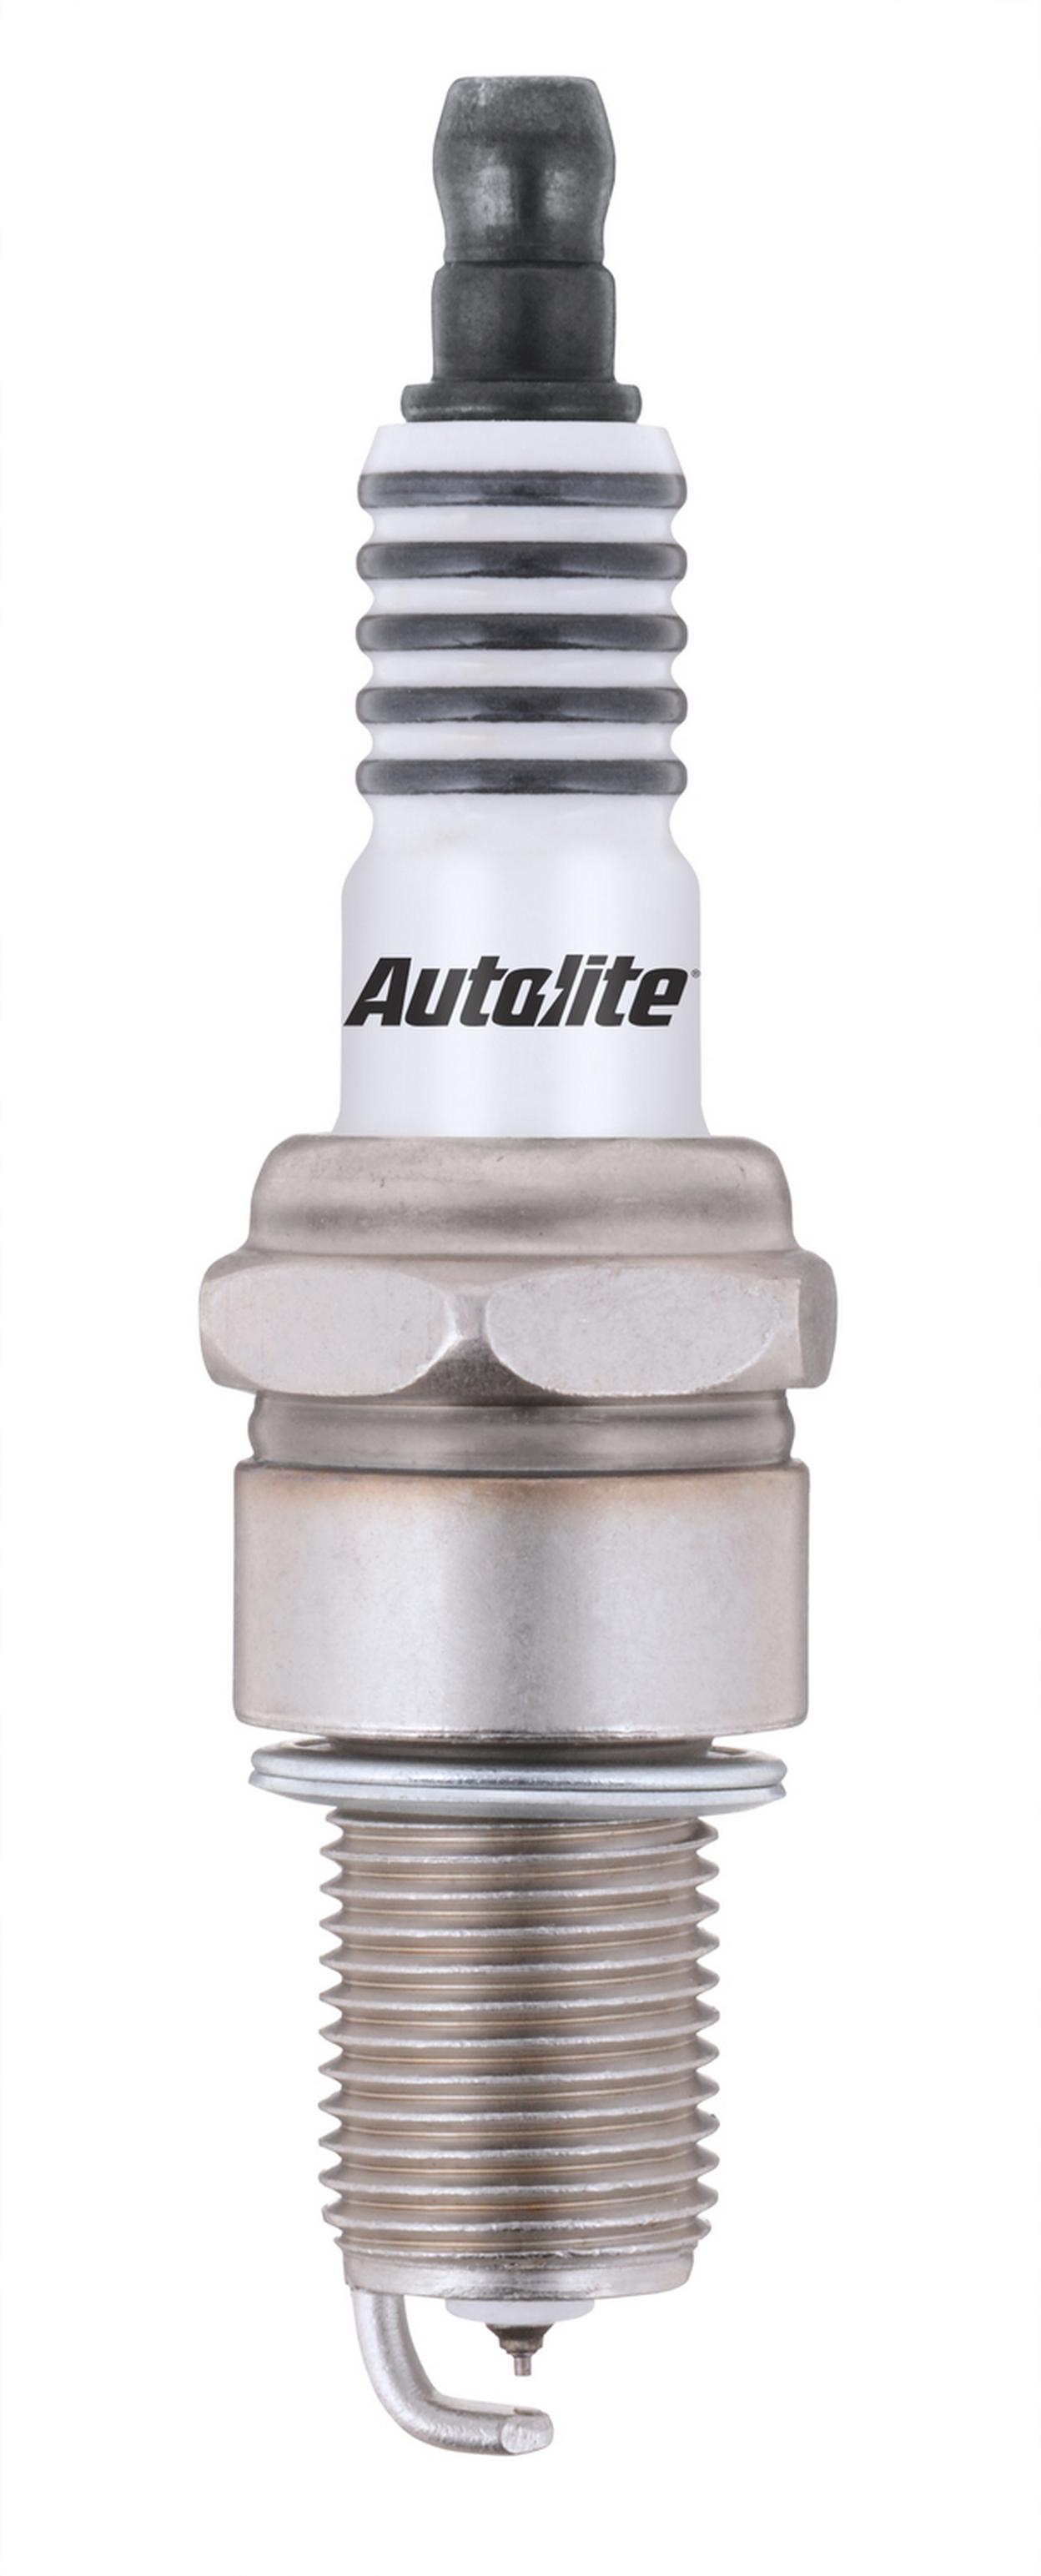 Autolite XP63DP2 Autolite XP63DP2 Iridium XP Spark Plug - Display Pack - 2pk